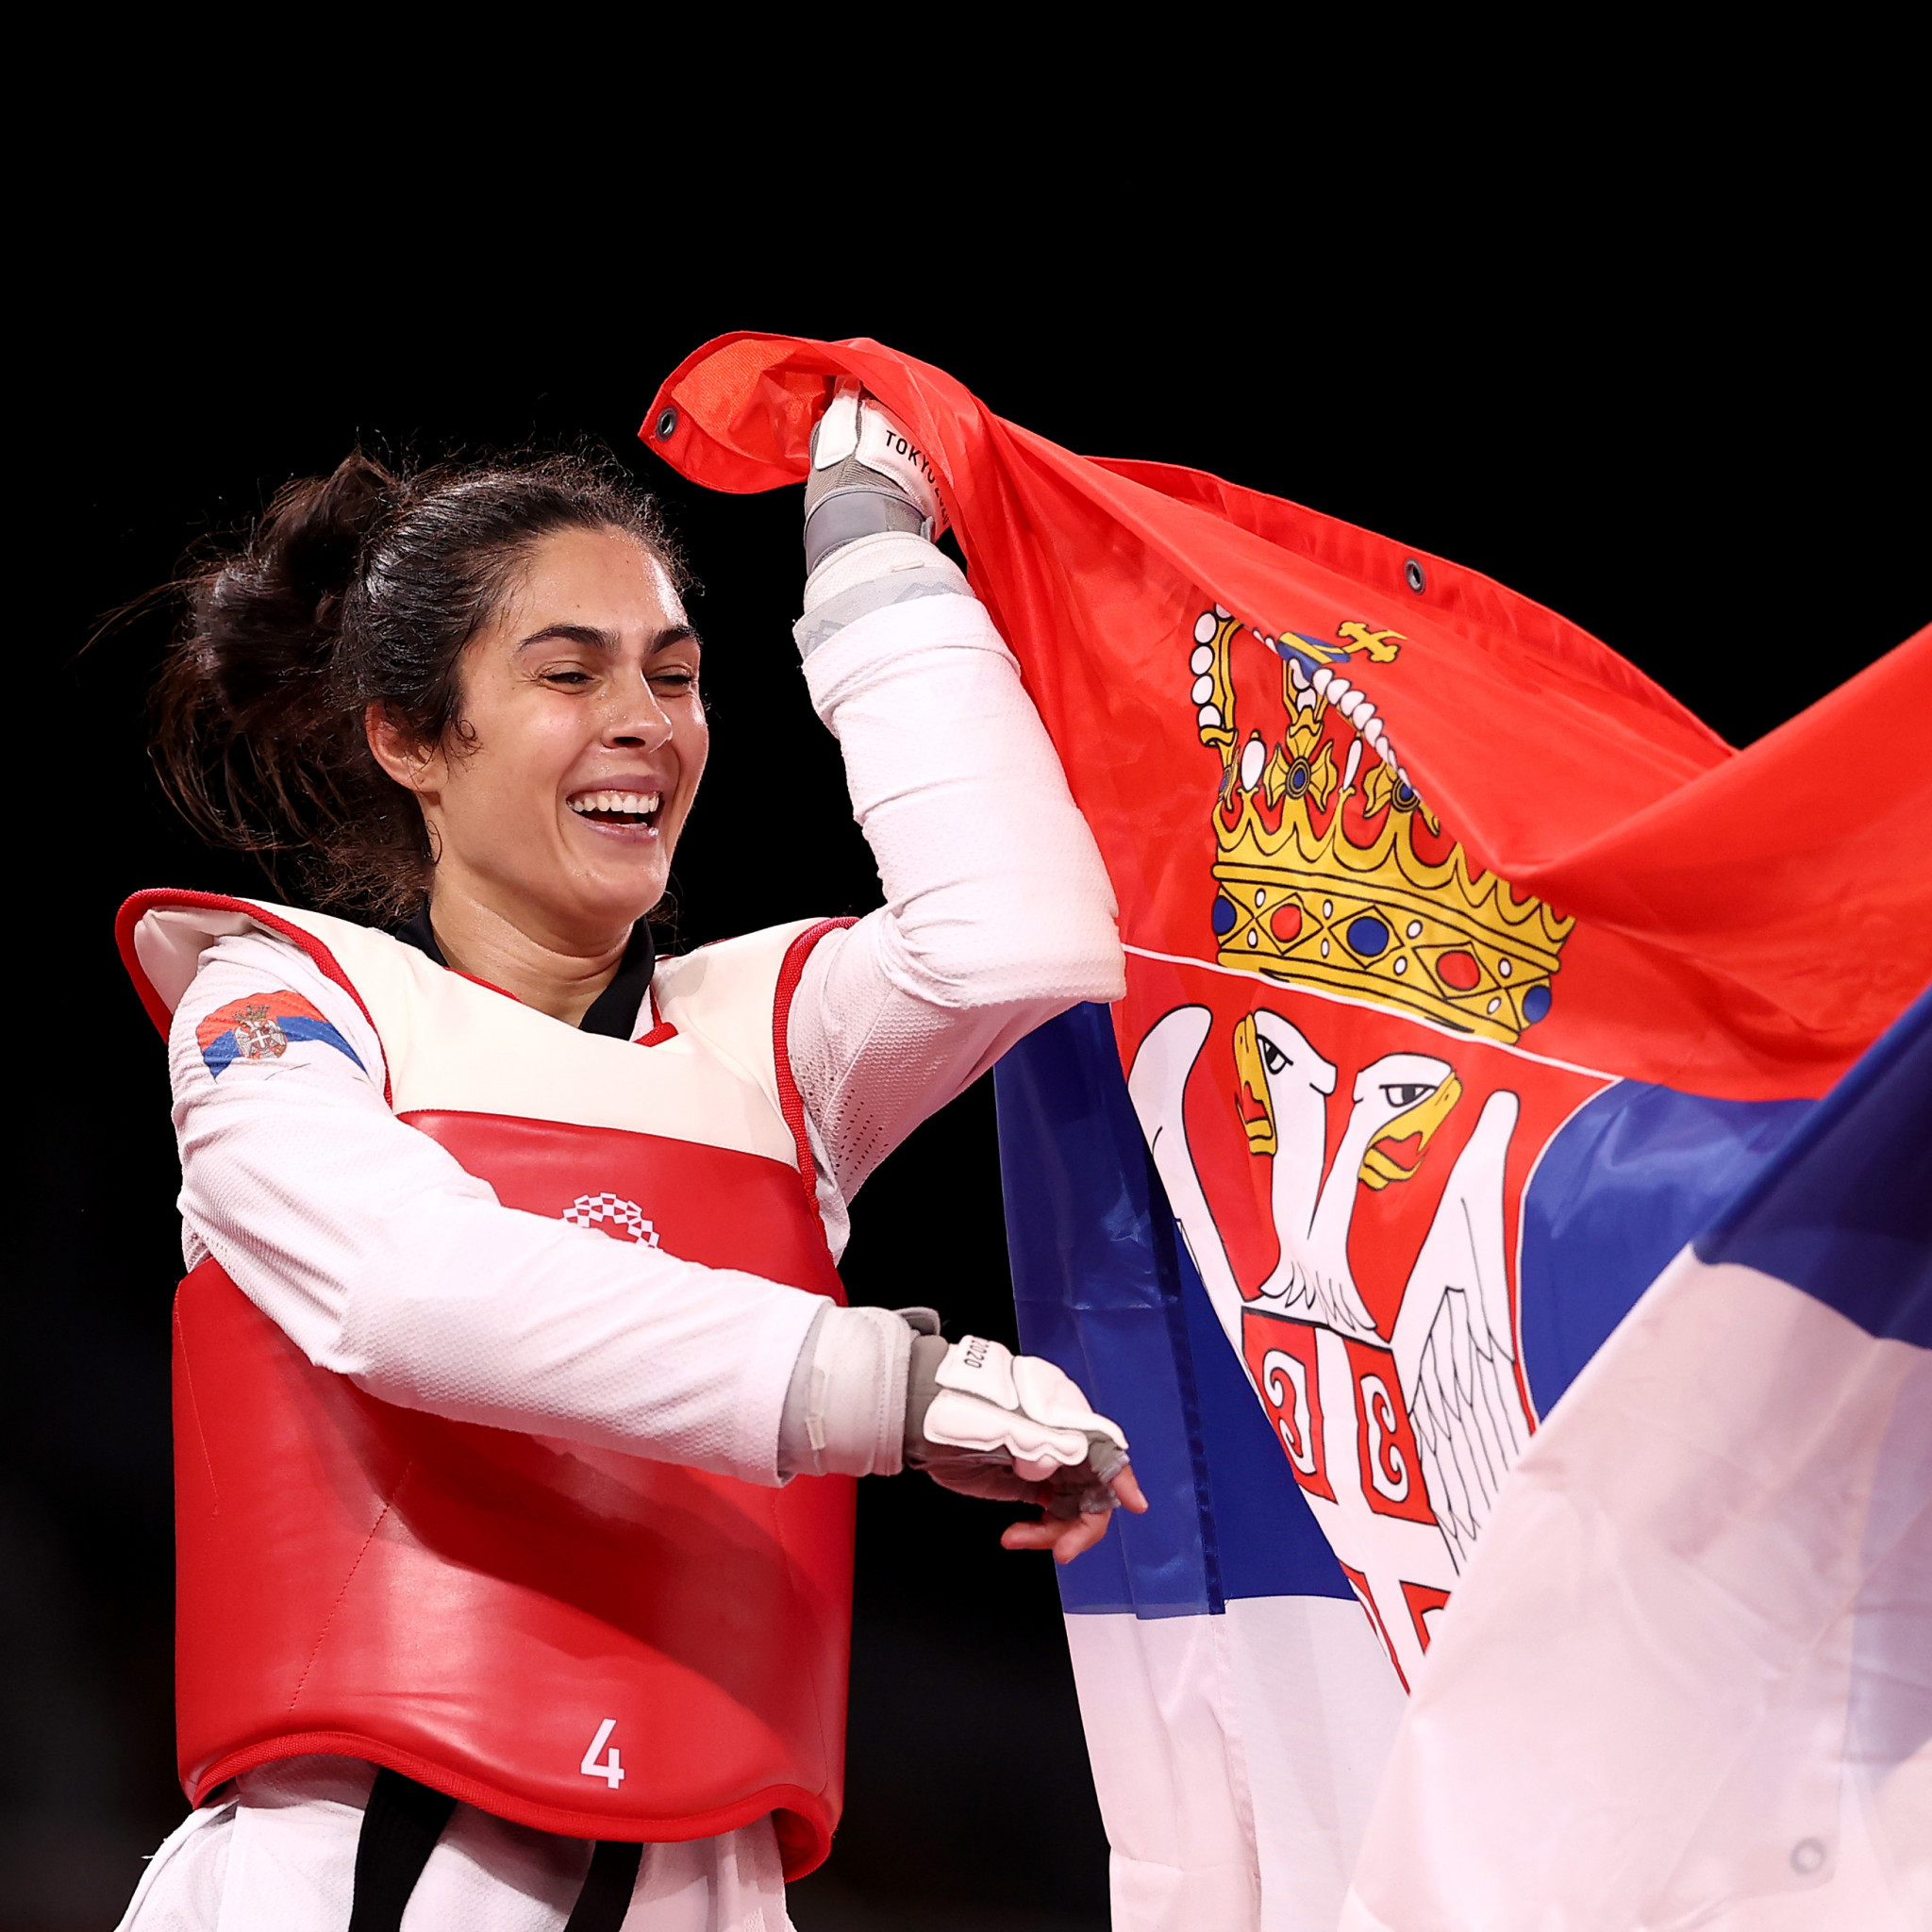 Milica Mandić: Serbia's history maker does it again in Tokyo